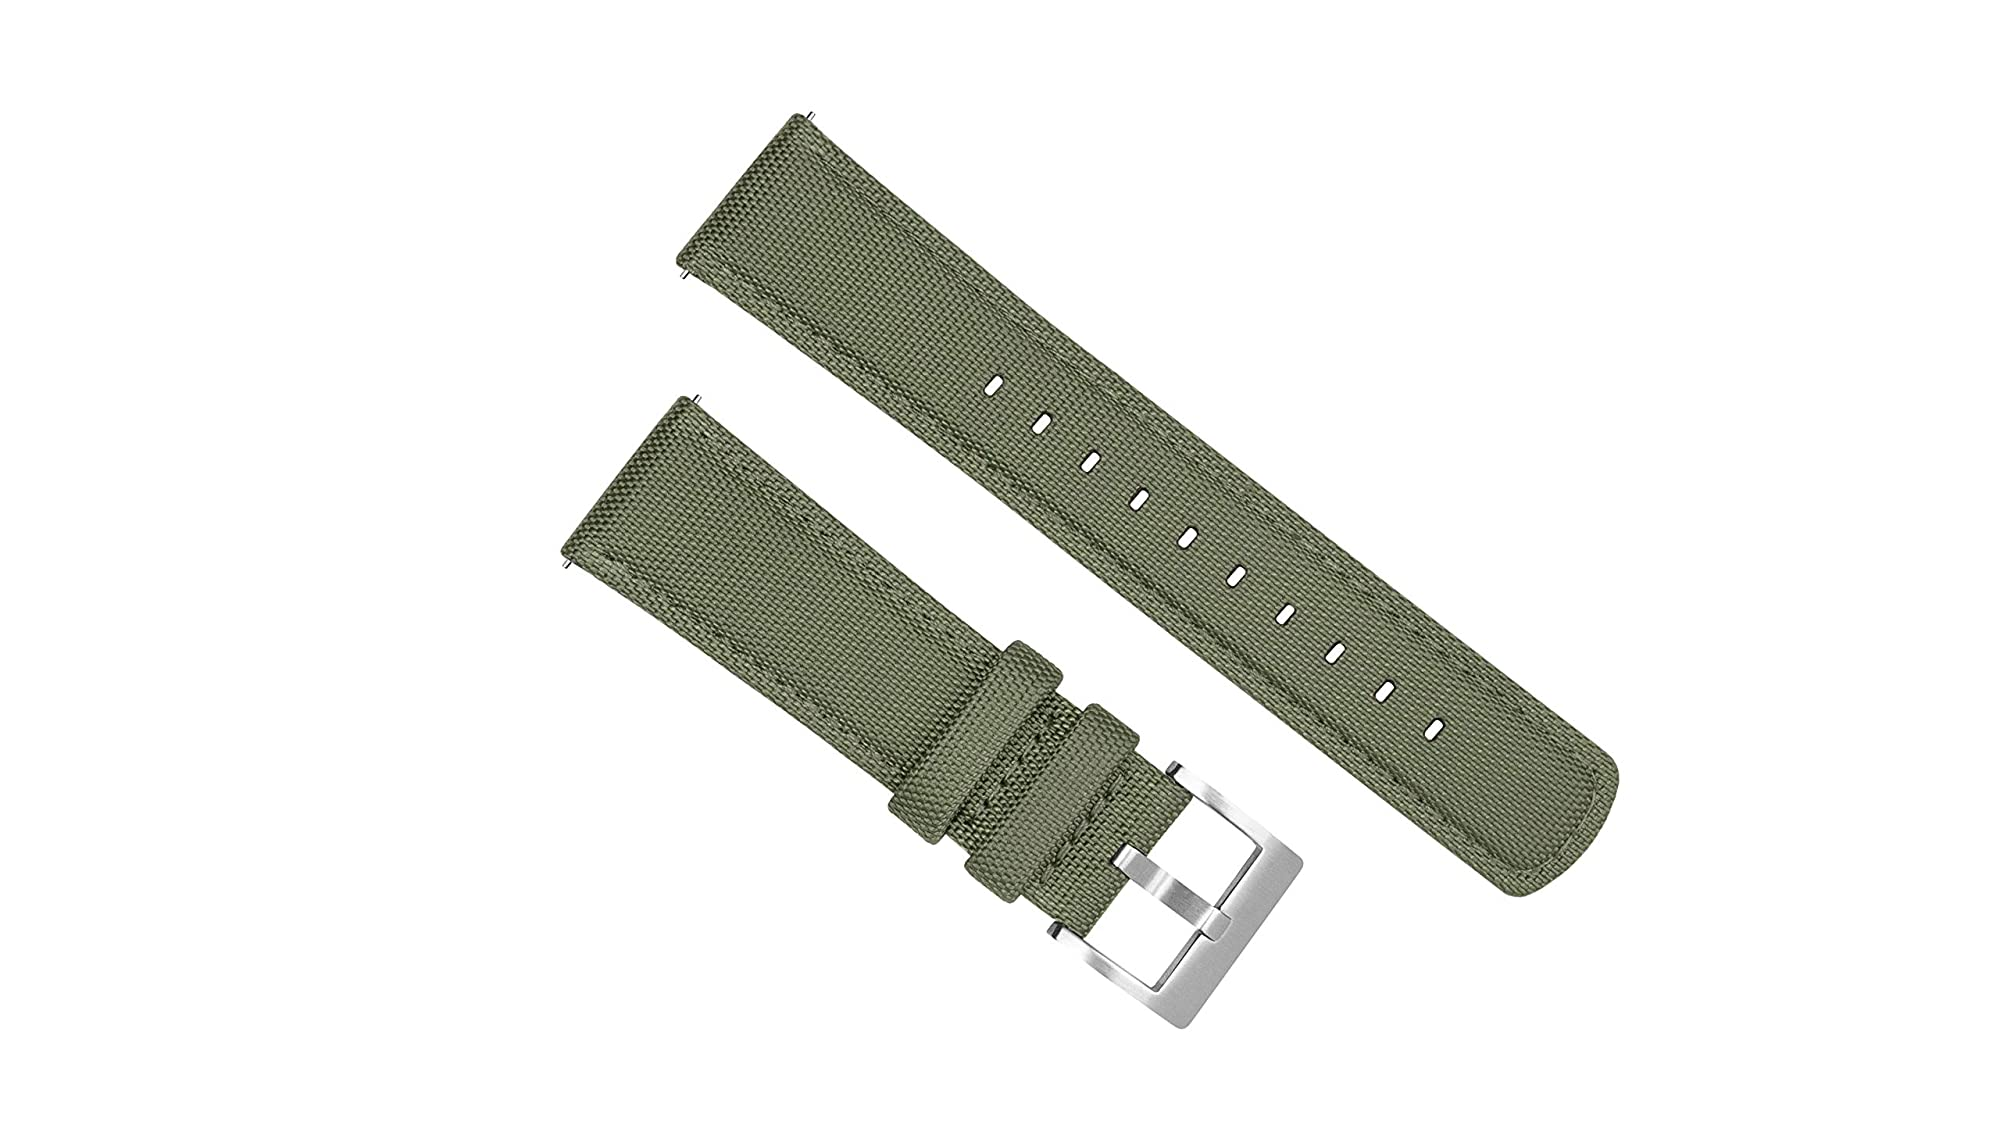 Premium Watch Bands For Men And Women